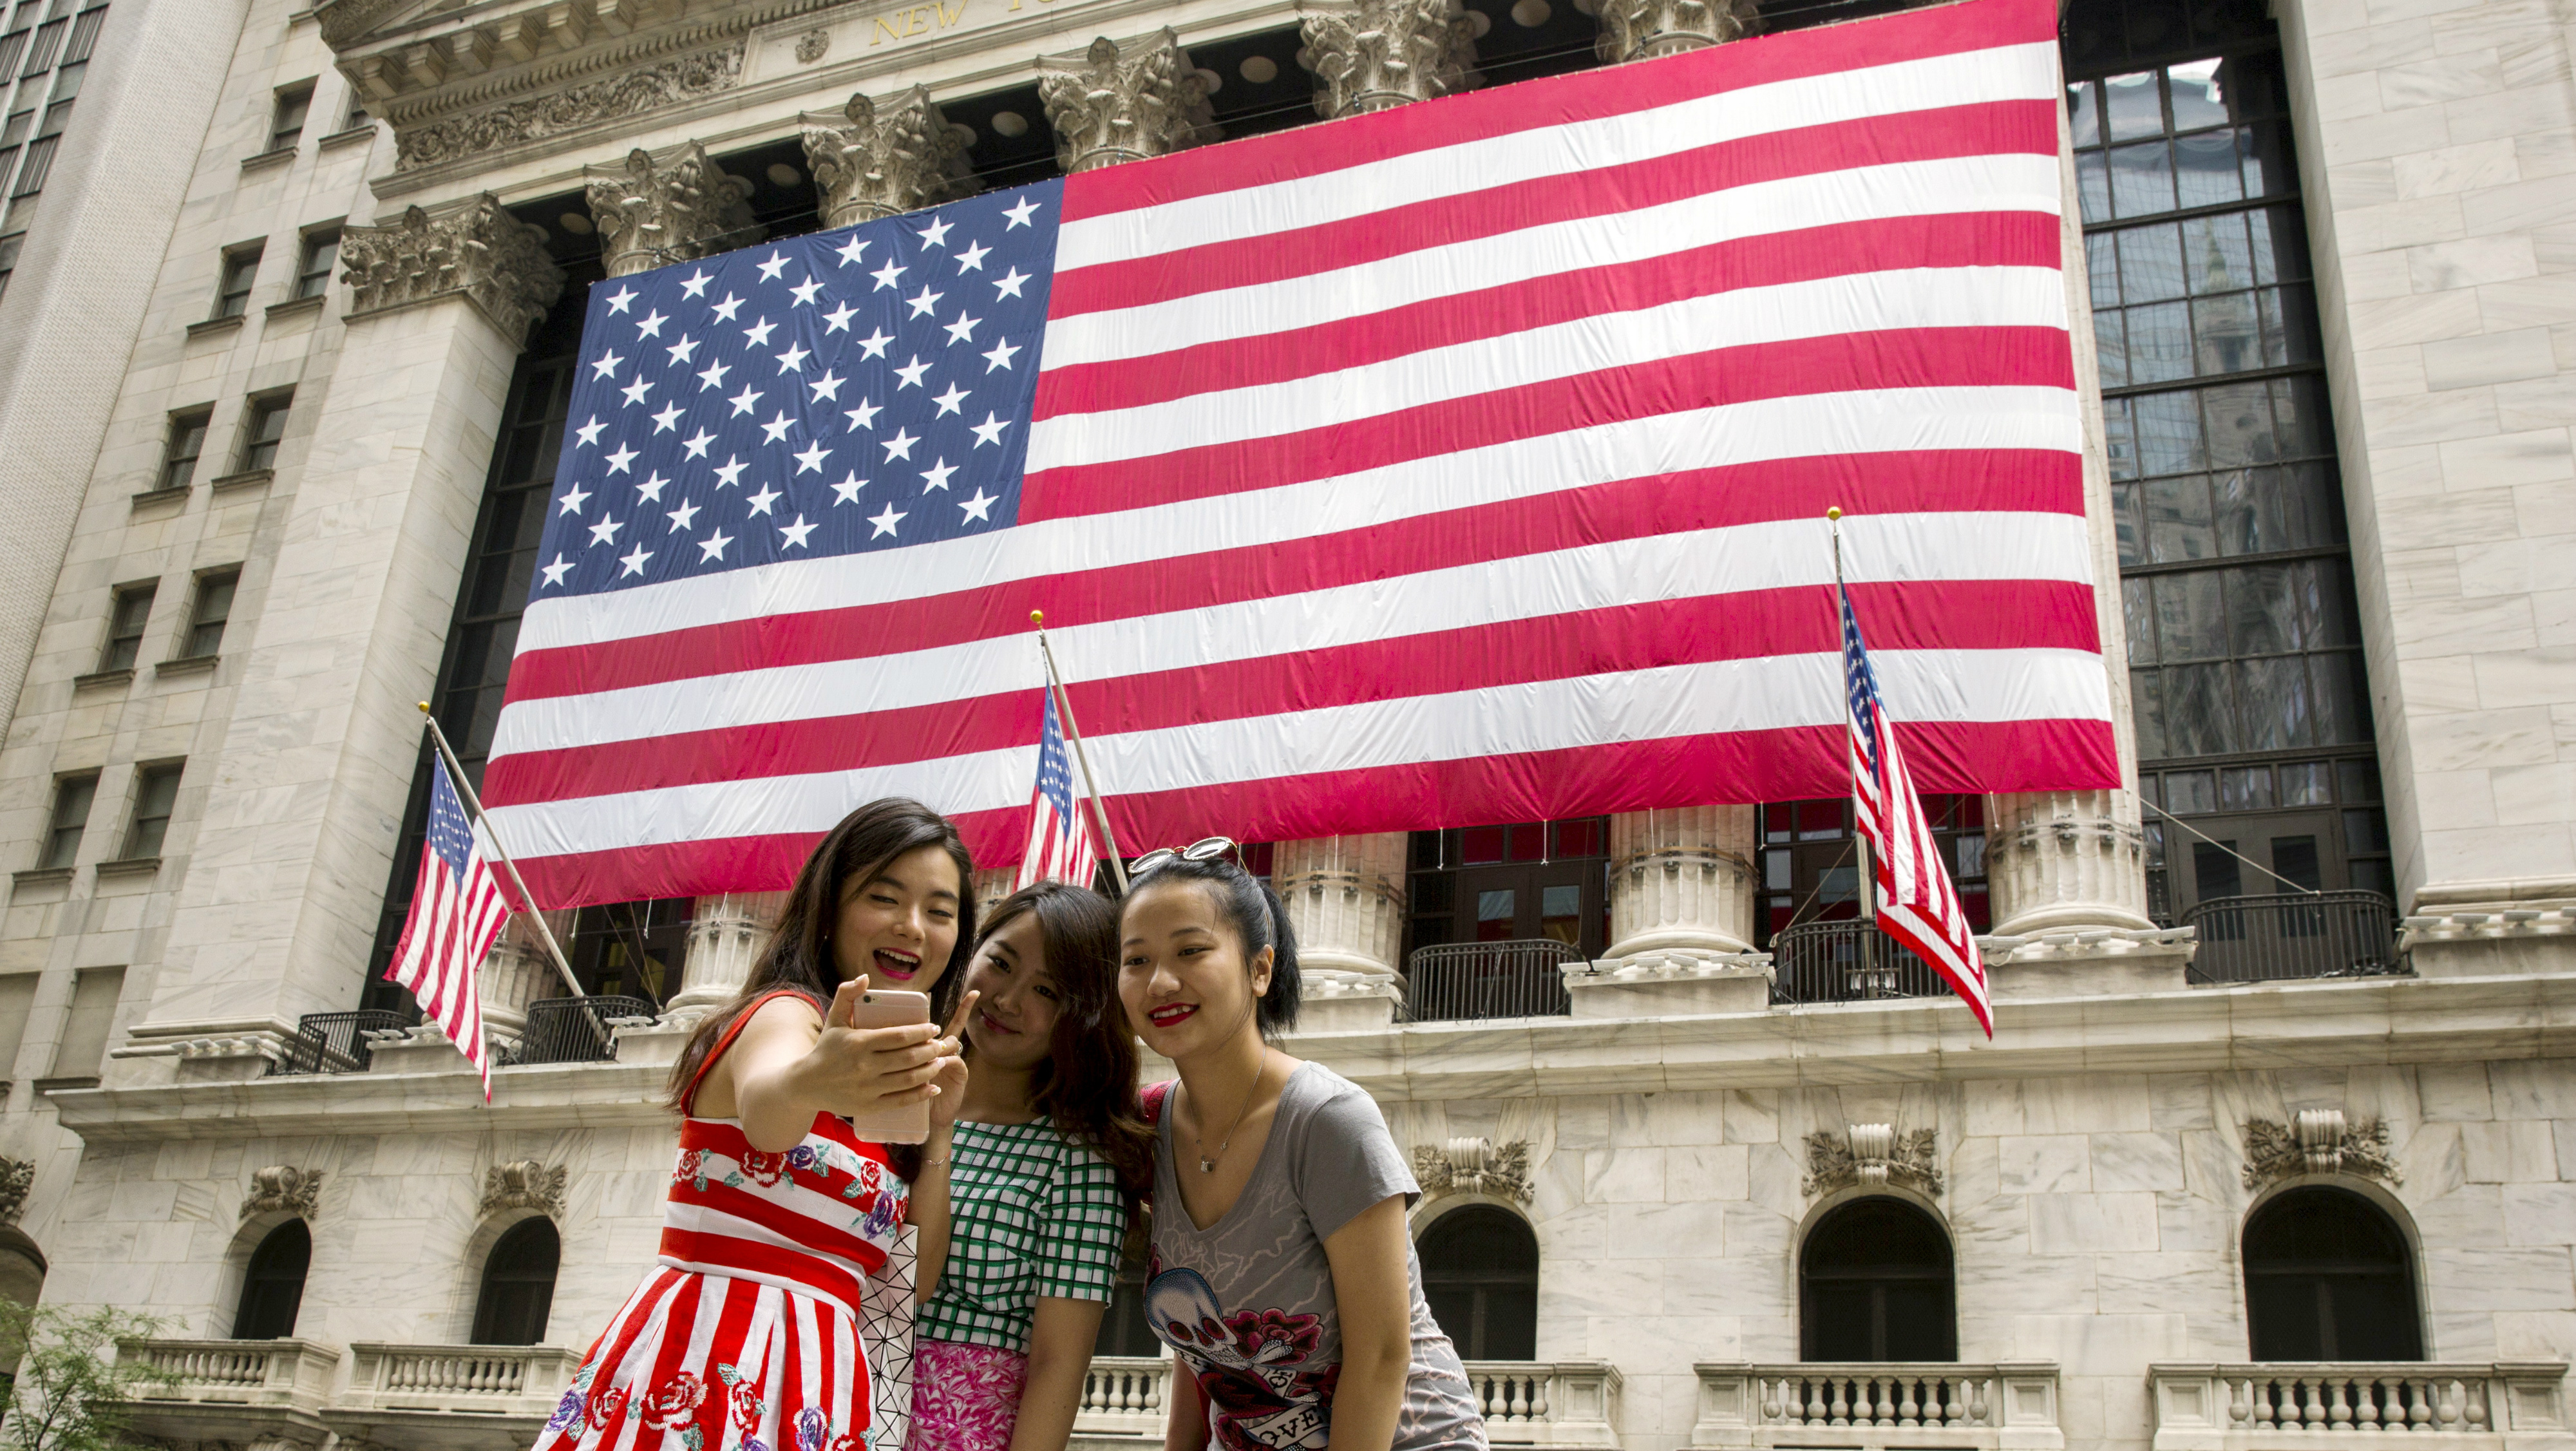 Chinese tourists take photographs of themselves outside of the New York Stock Exchange.